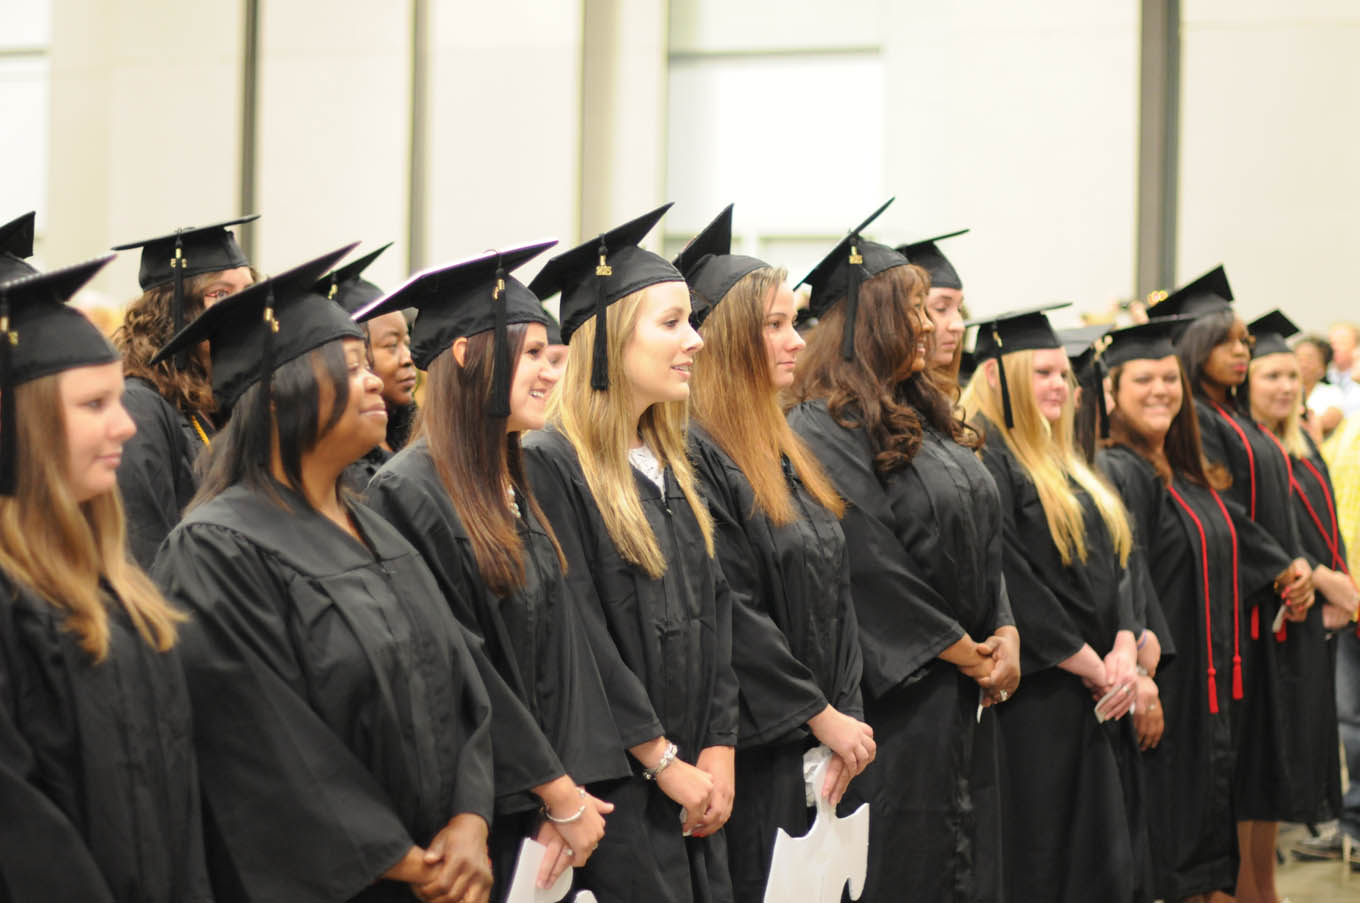 Click to enlarge,  There are approximately 840 members of the Class of 2015 at Central Carolina Community College. Commencement exercises were held on May 22 at the Dennis A. Wicker Civic Center in Sanford.